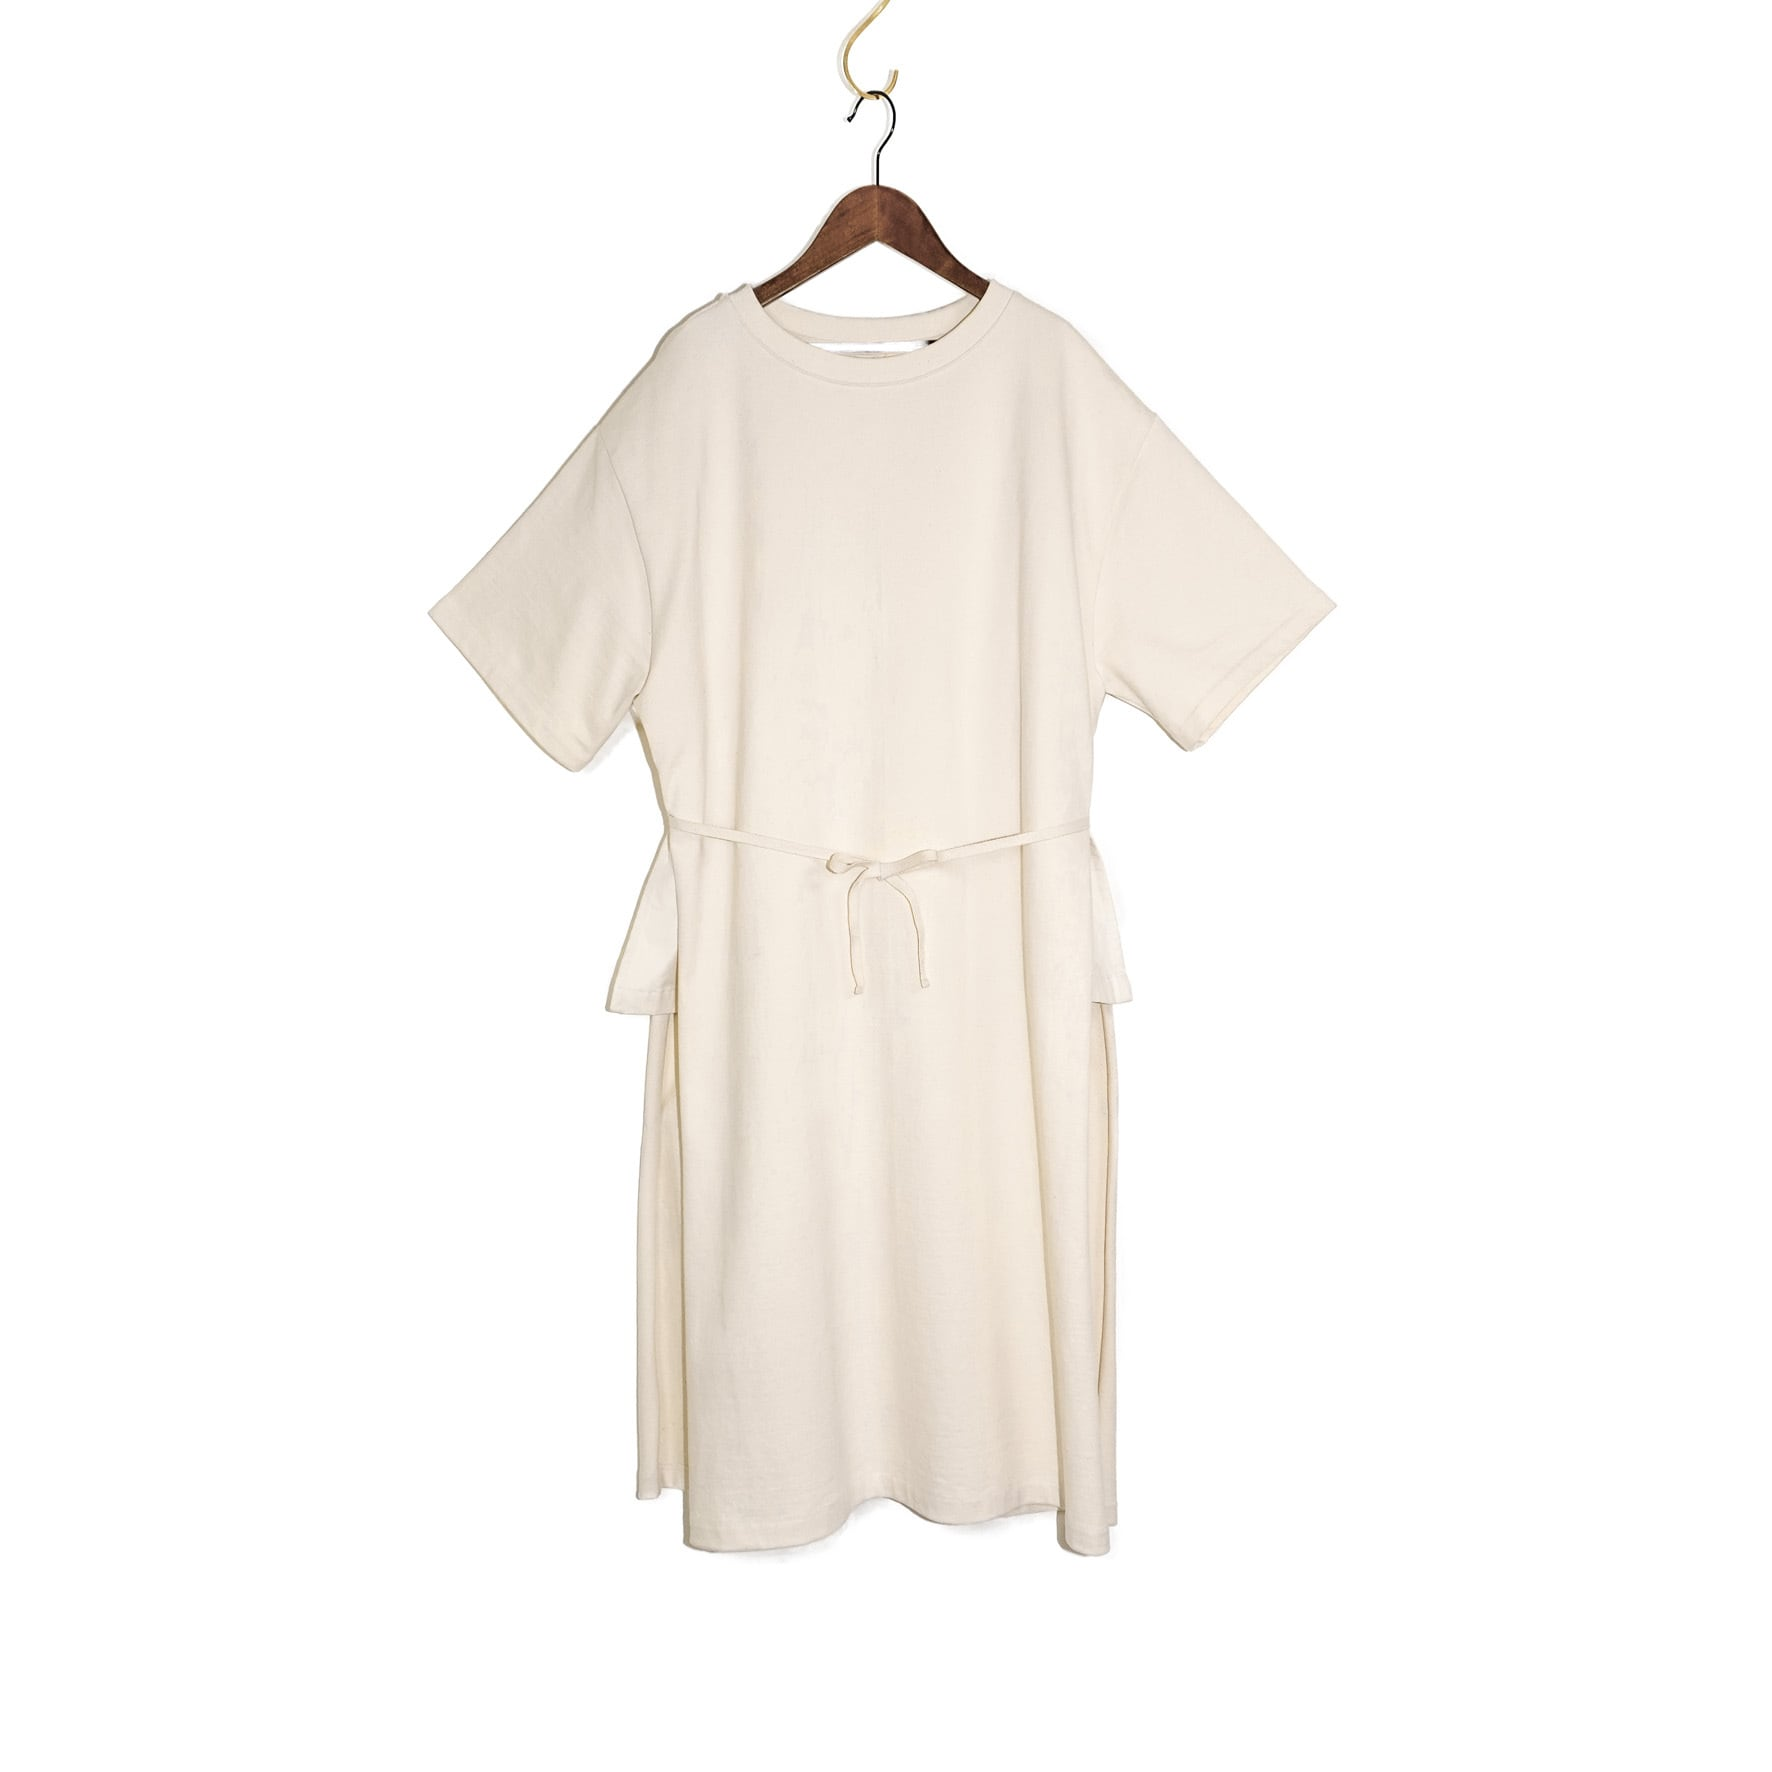 【MADE IN JAPAN】MAXI ONE-PIECE WORK WEAR / SHORT SLEEVES